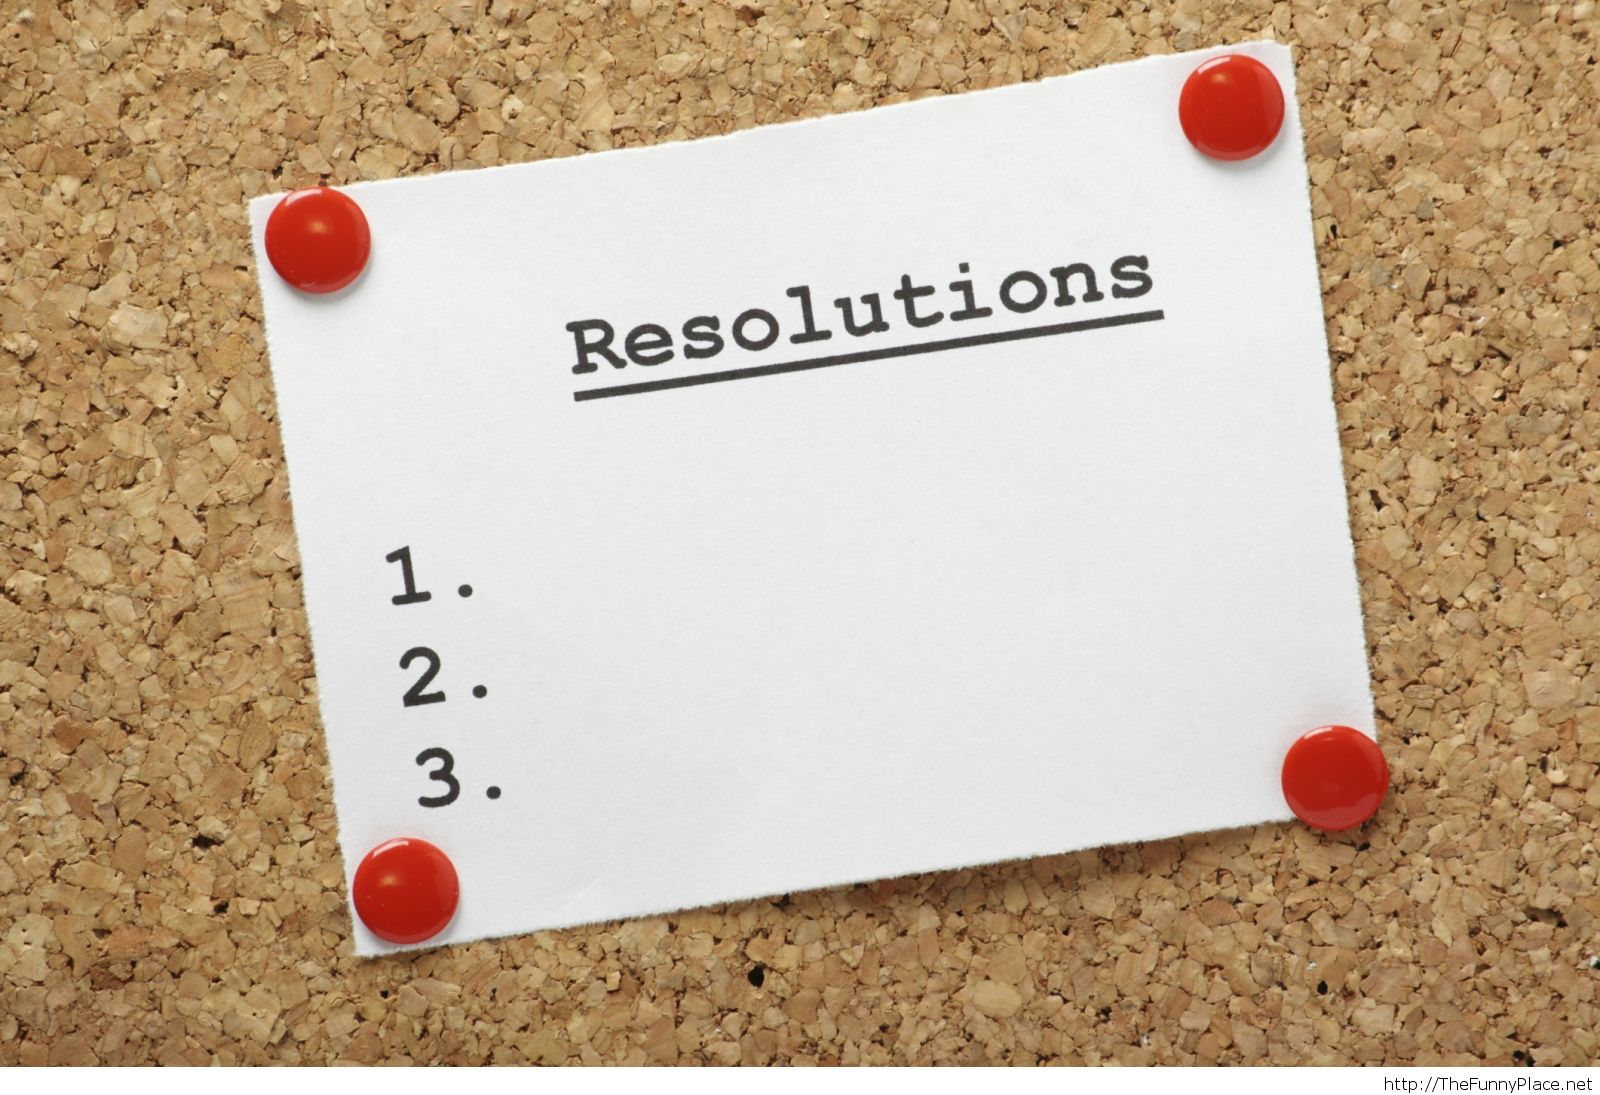 My funny resolutions for 2014